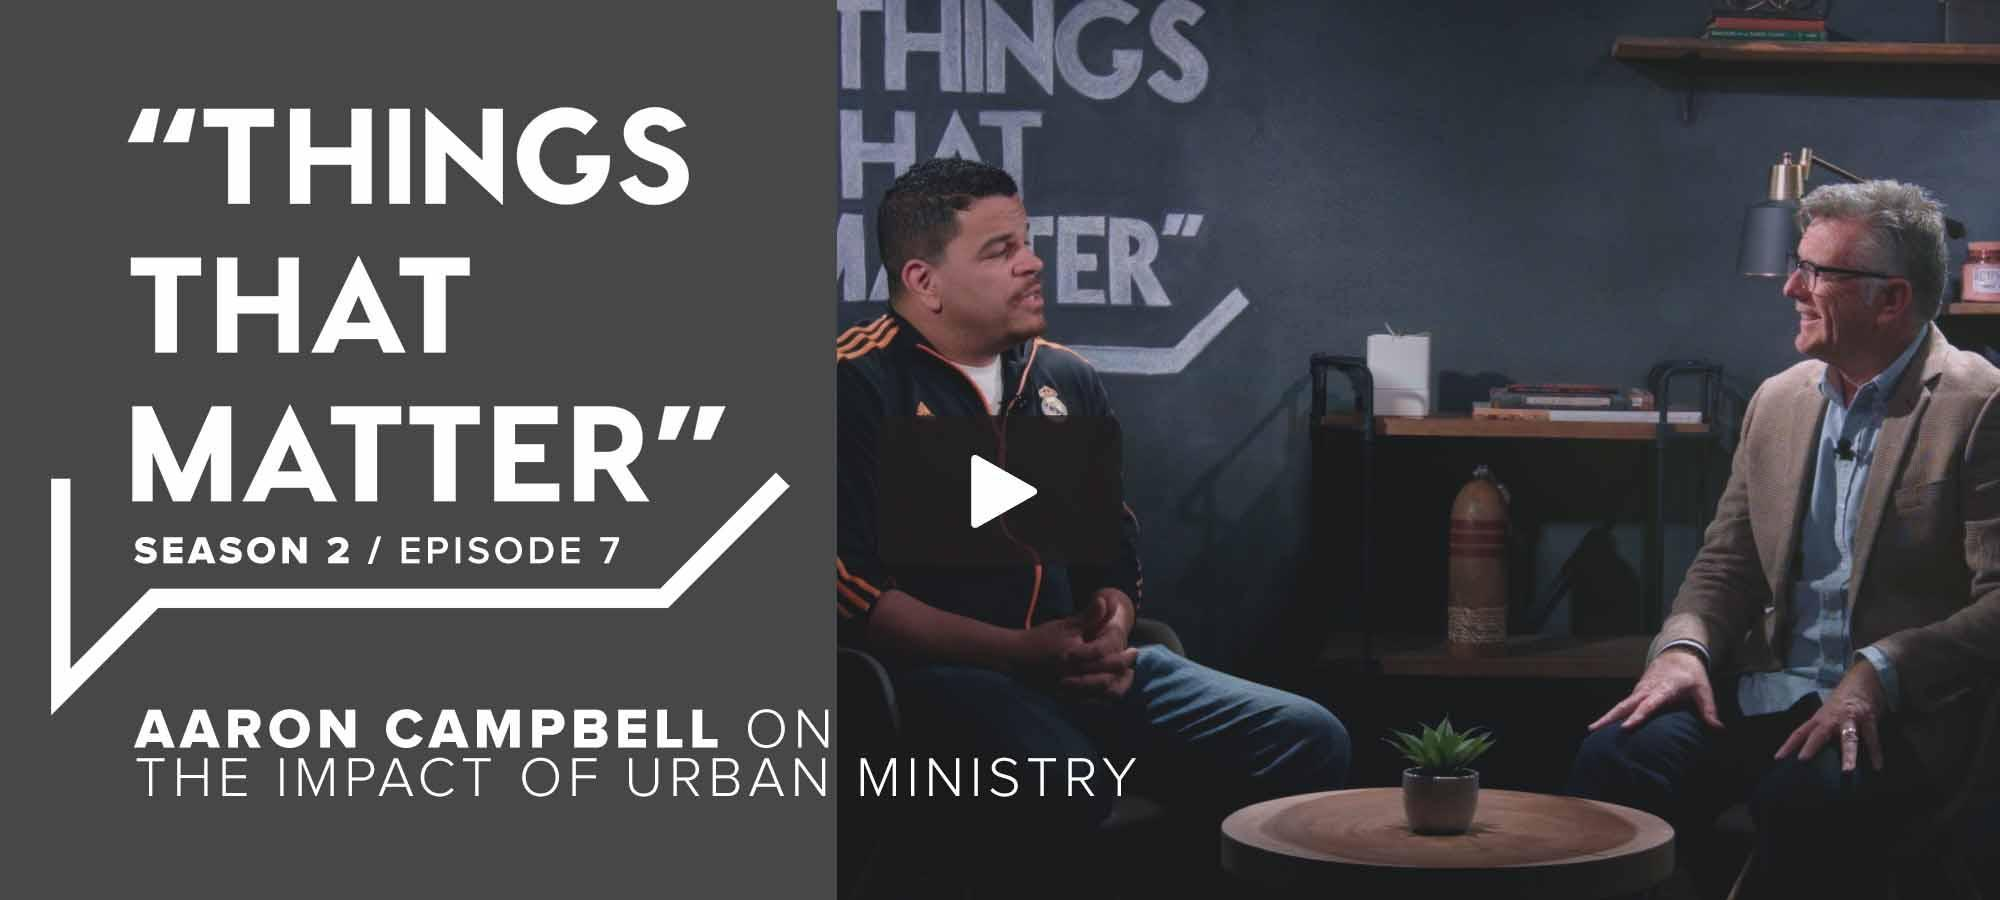 TTM S2 E7 - Aaron Campbell on the Impact of Urban Ministry